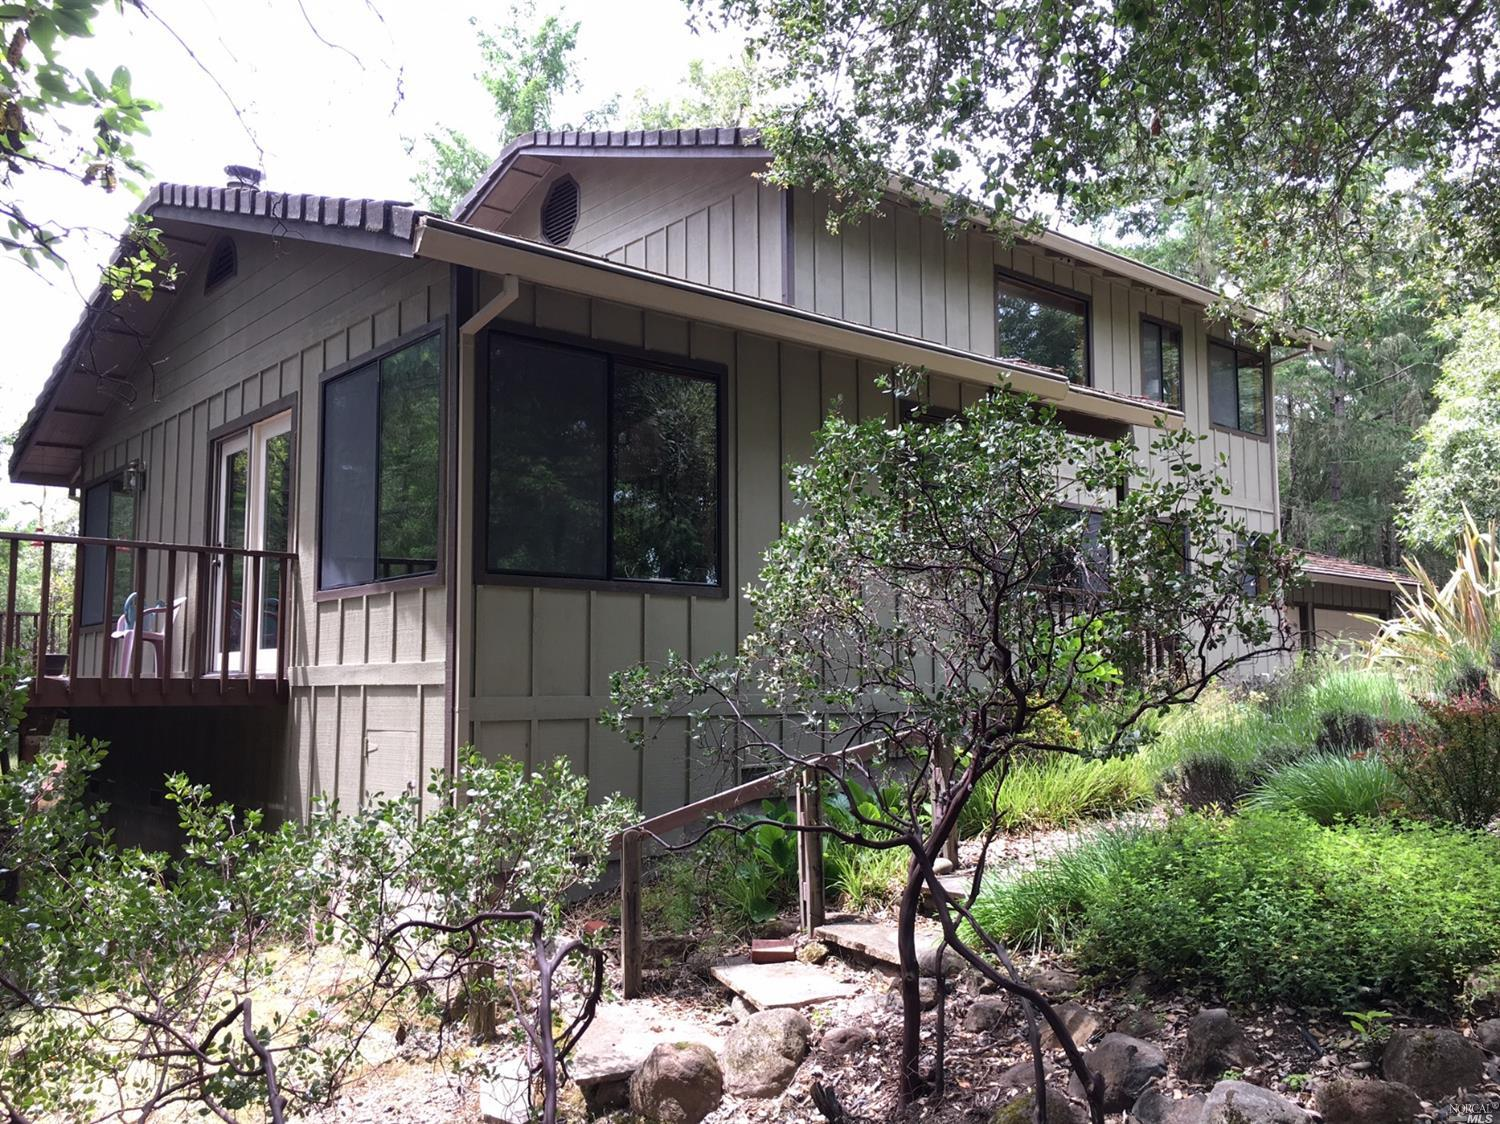 Nature lover's haven. Surrounded by redwood, oak, and madrone, this hilltop home offers privacy, quiet except for birdsong, and 24.5 acres of wildlife. Front garden certified as wildlife friendly by National Wildlife Federation. Private, Custom 2 story home with lots of wonderful features including Large Ground Level Suite!!! Very well maintained by original owner & offers open floor plan & decking.